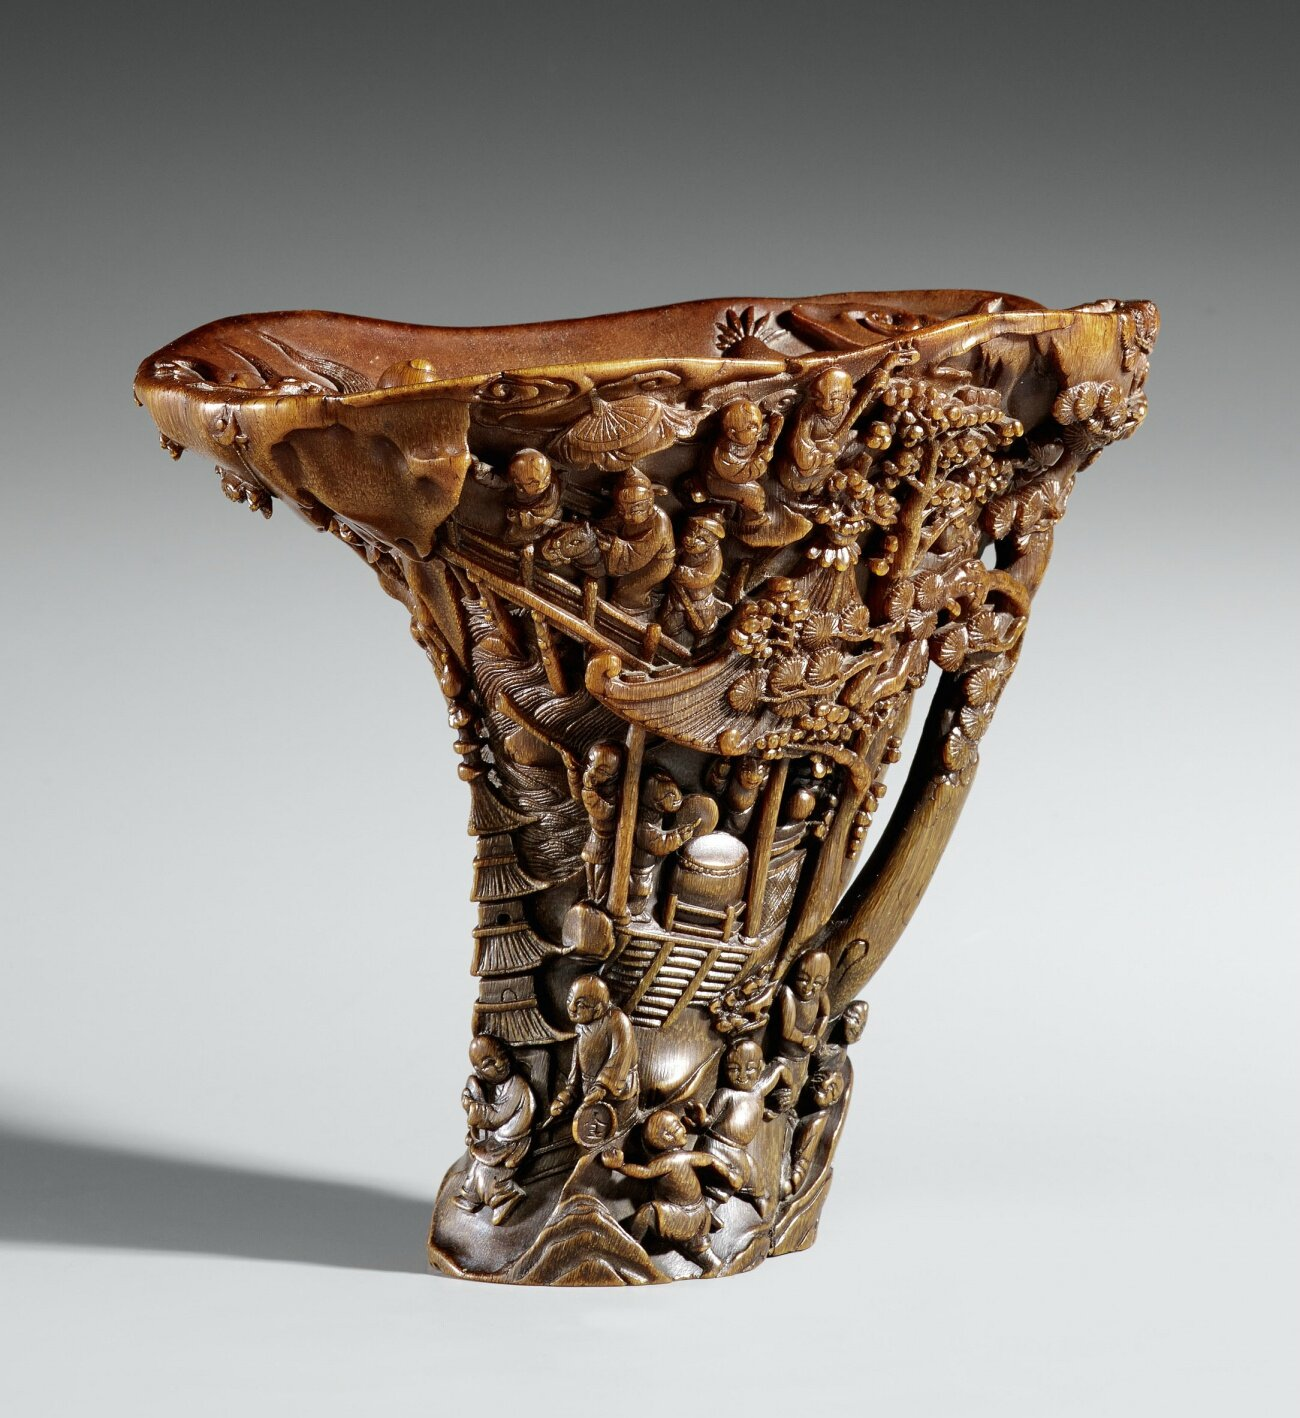 A large rhinoceros horn libation cup, 17th-18th century